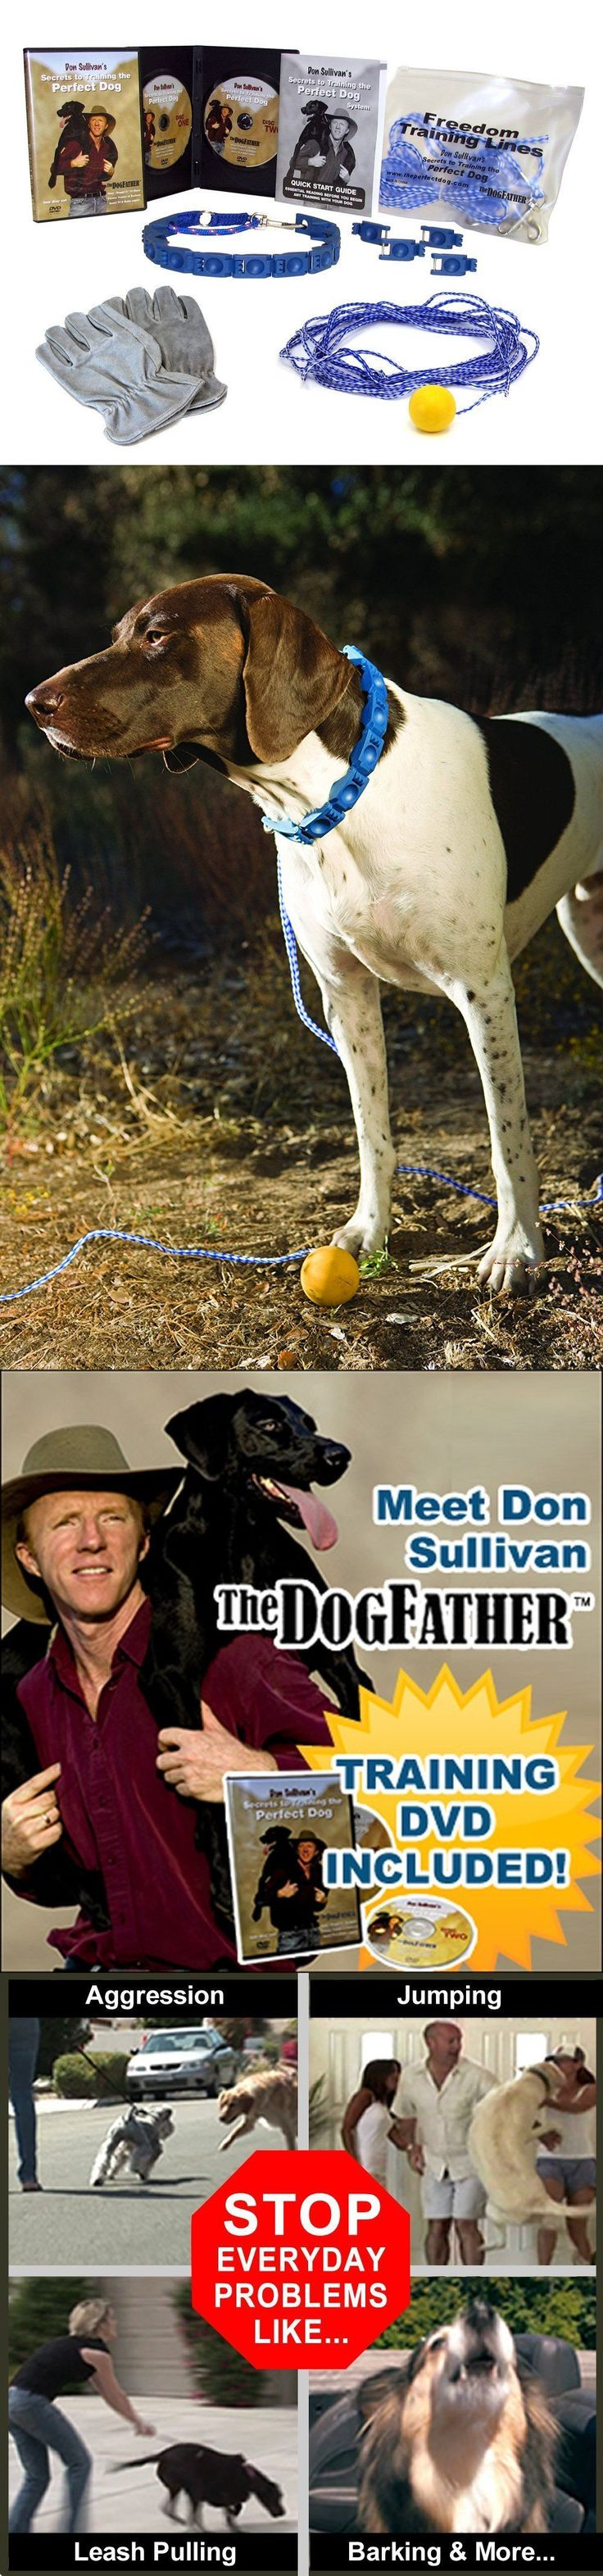 Training Videos and Books 116387: New Don Sullivan Perfect Dog Fast Results Pet Training Package Large Trainer Dvd -> BUY IT NOW ONLY: $80.99 on eBay!